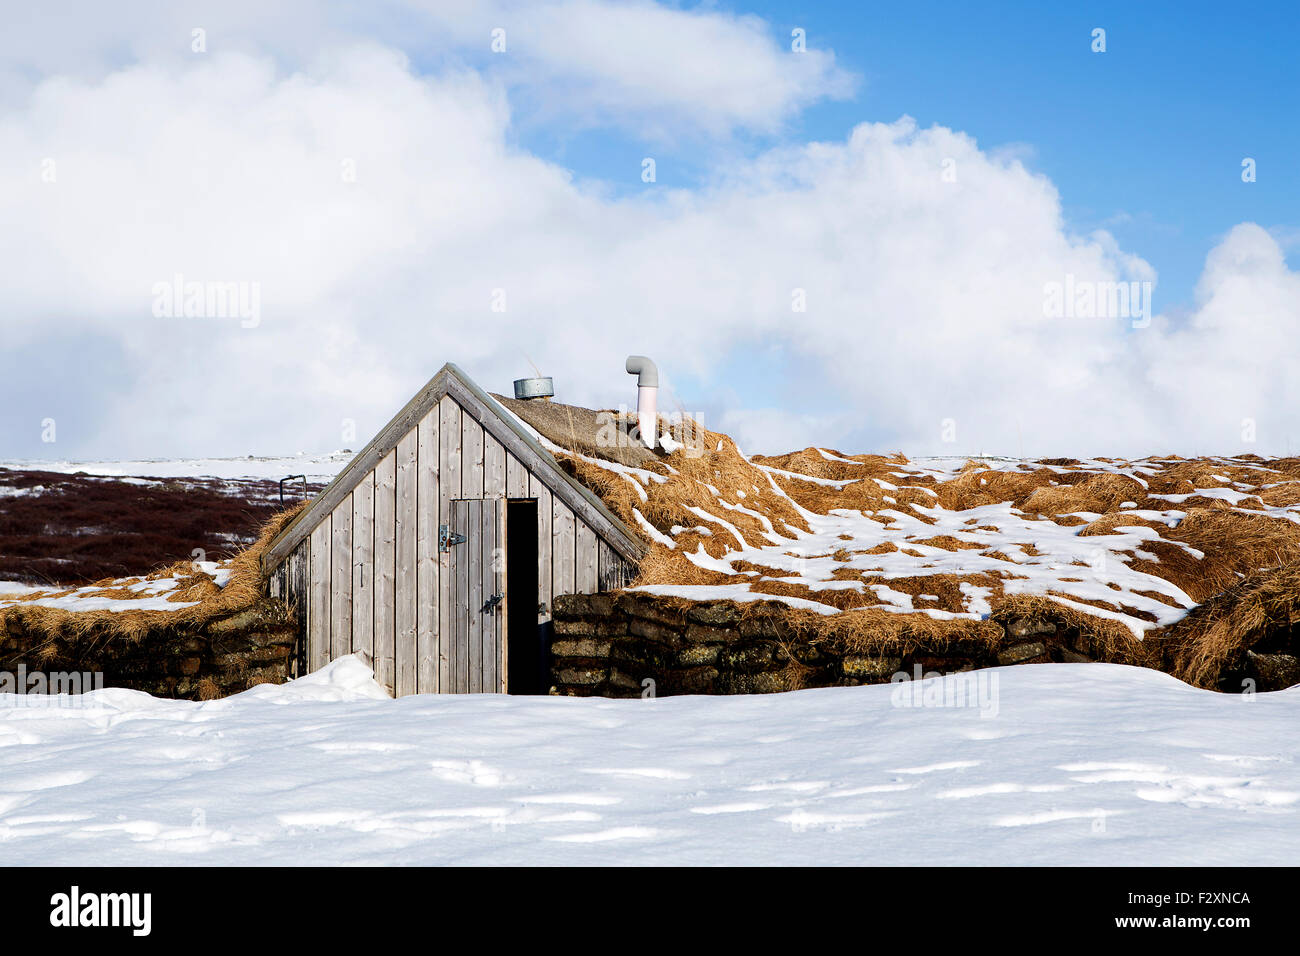 Tiny hut for elves in snowy Iceland - Stock Image